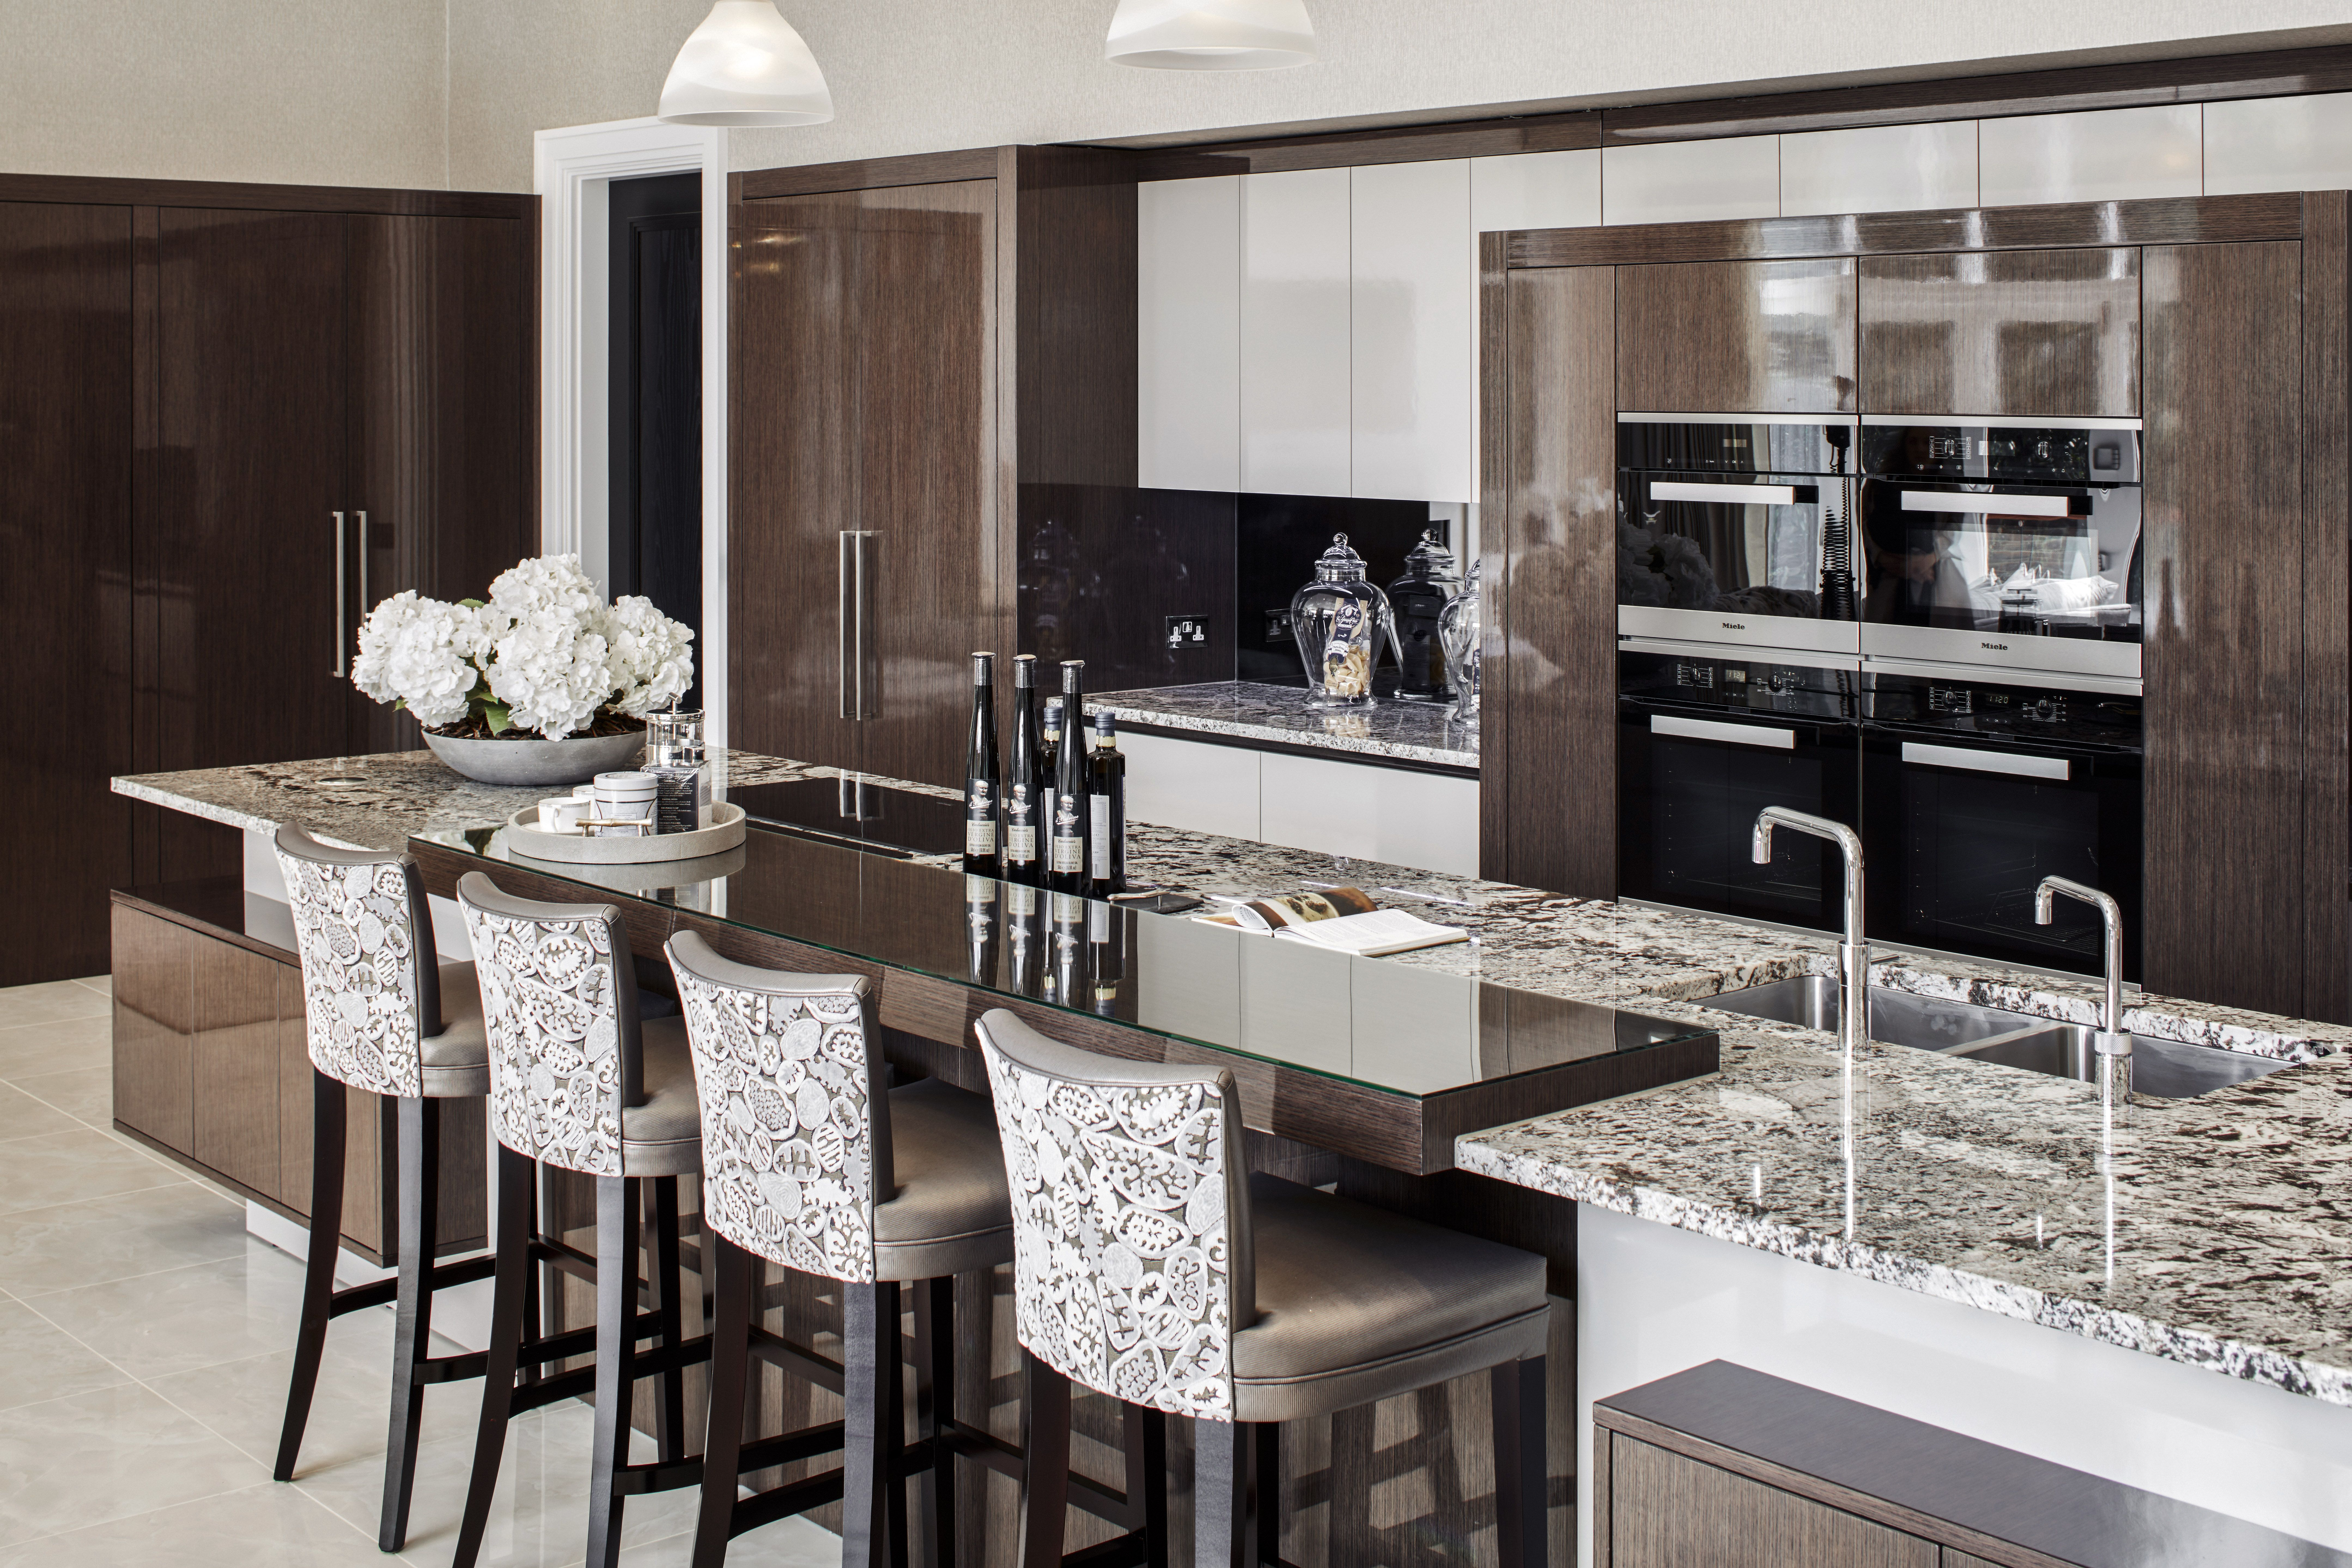 Extreme High Gloss Luxury Kitchen Bar Seating Intersecting Shapes And Forms Interplay With Each Other In A Bold Yet Elegant Contemporary Design For